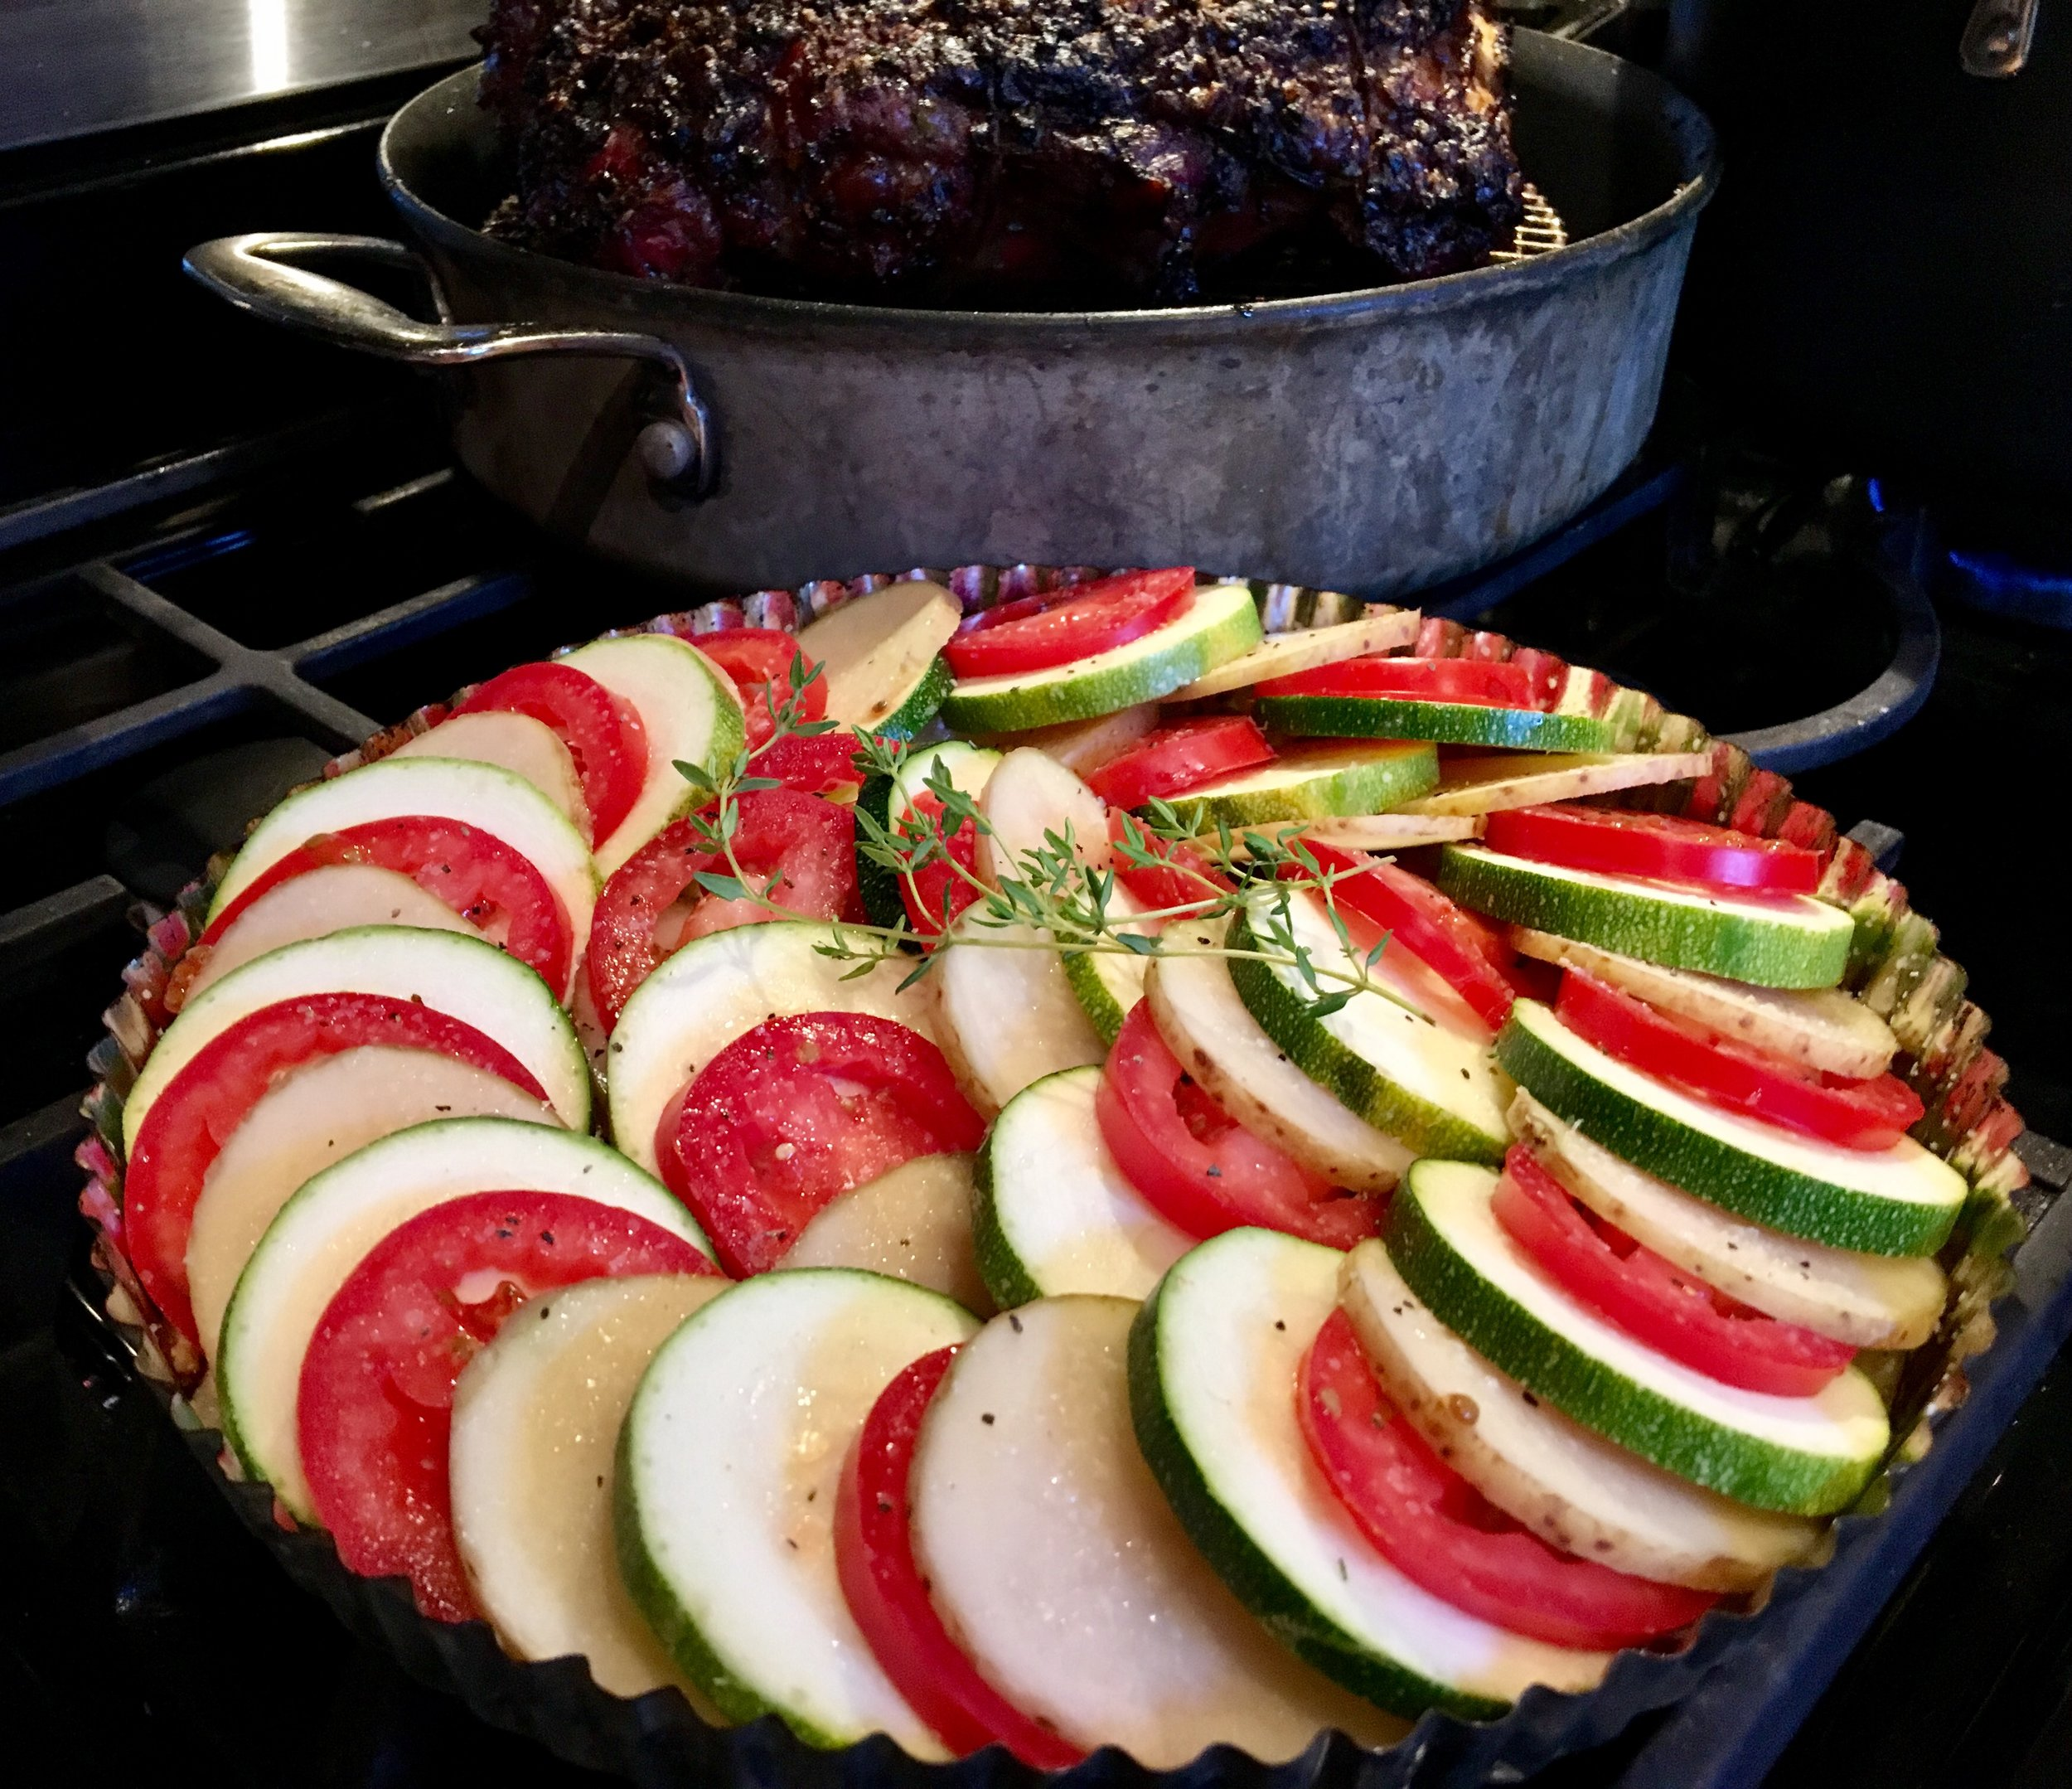 Tian almost ready for the oven, as the Roasted Prime Rib rests before slicing!